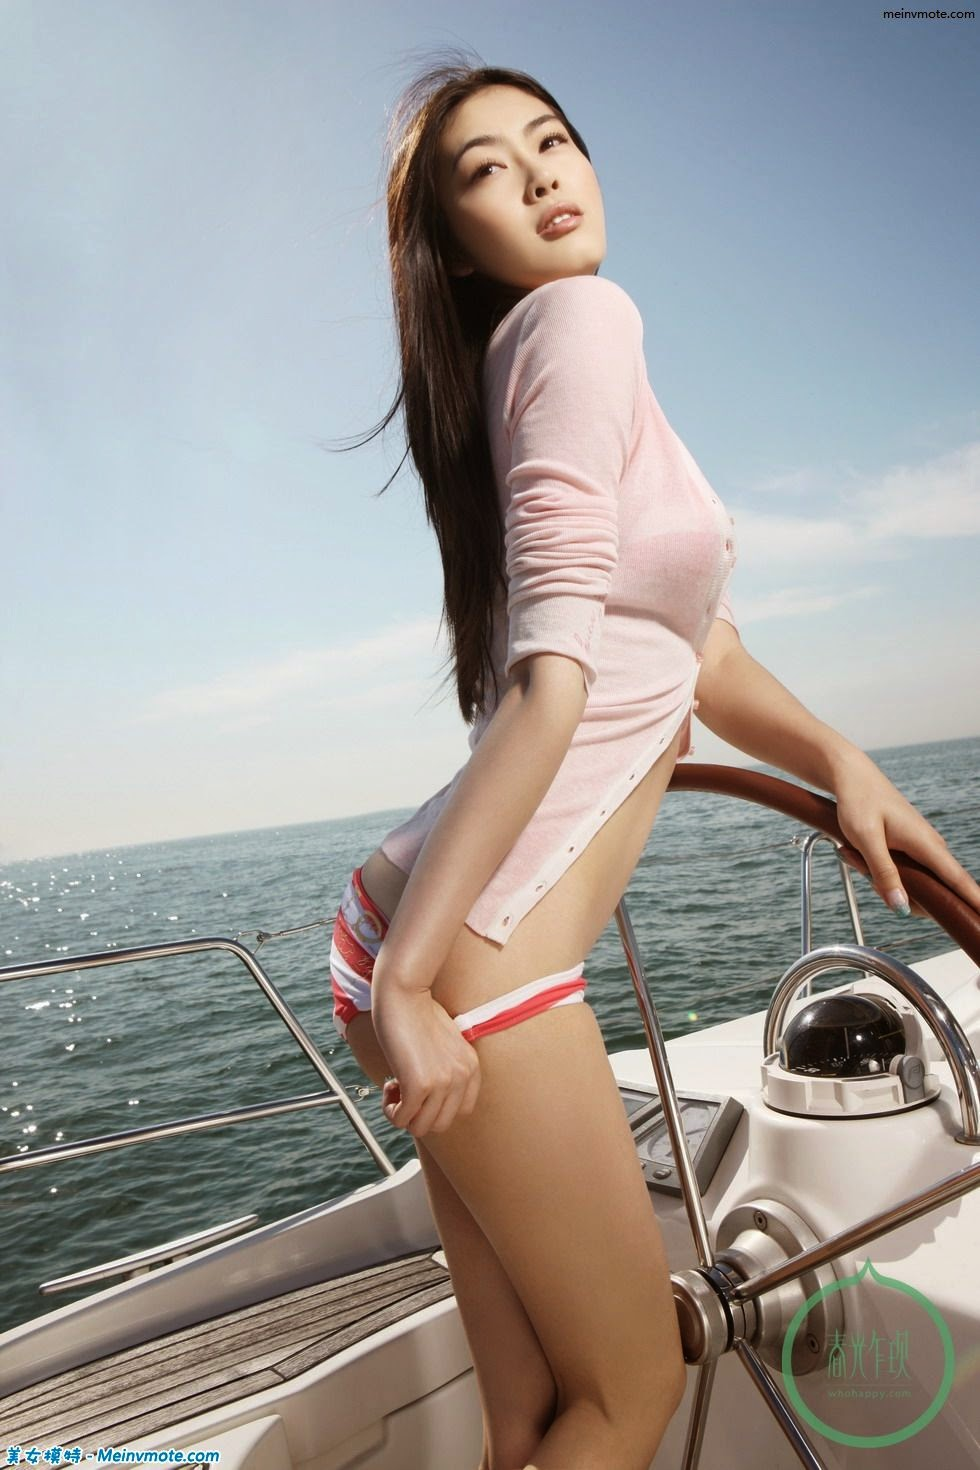 Angels on the yacht who desires Chunguangwaixie